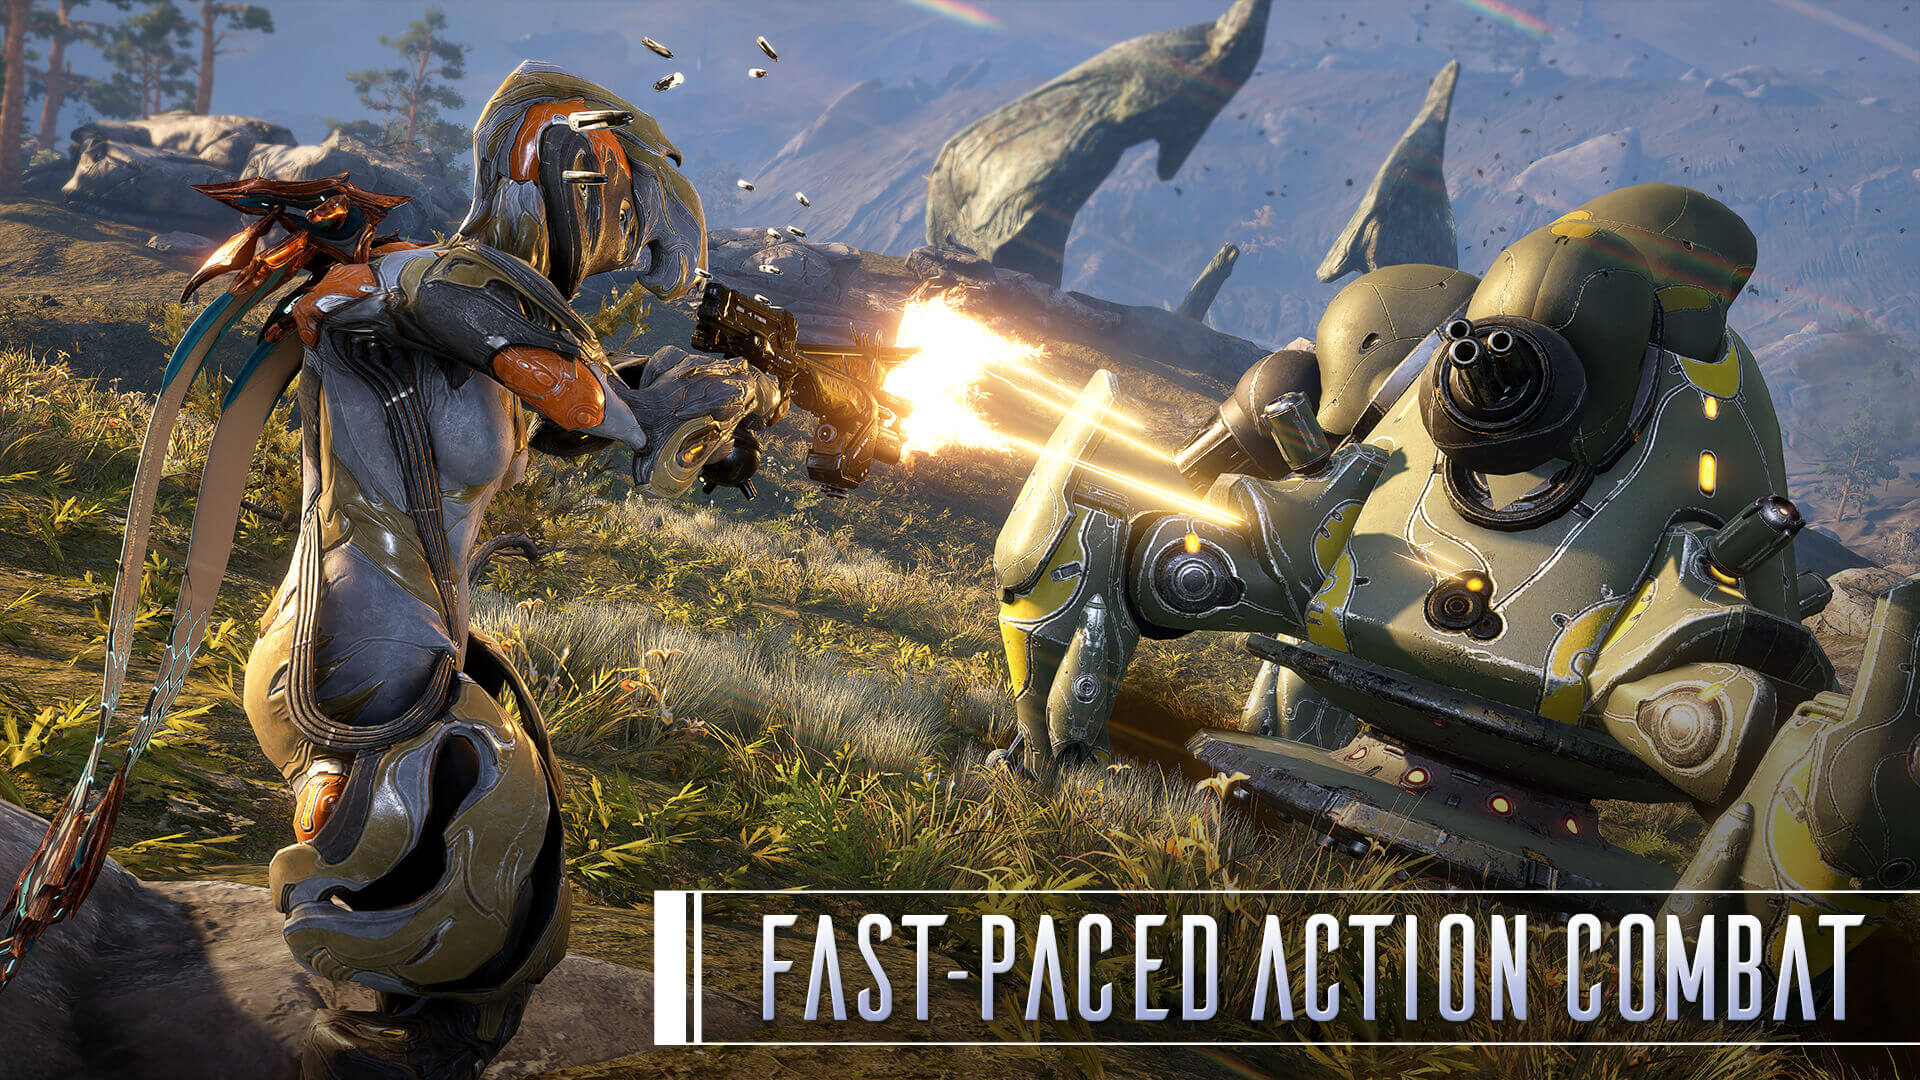 Fast-Paced Action Combat